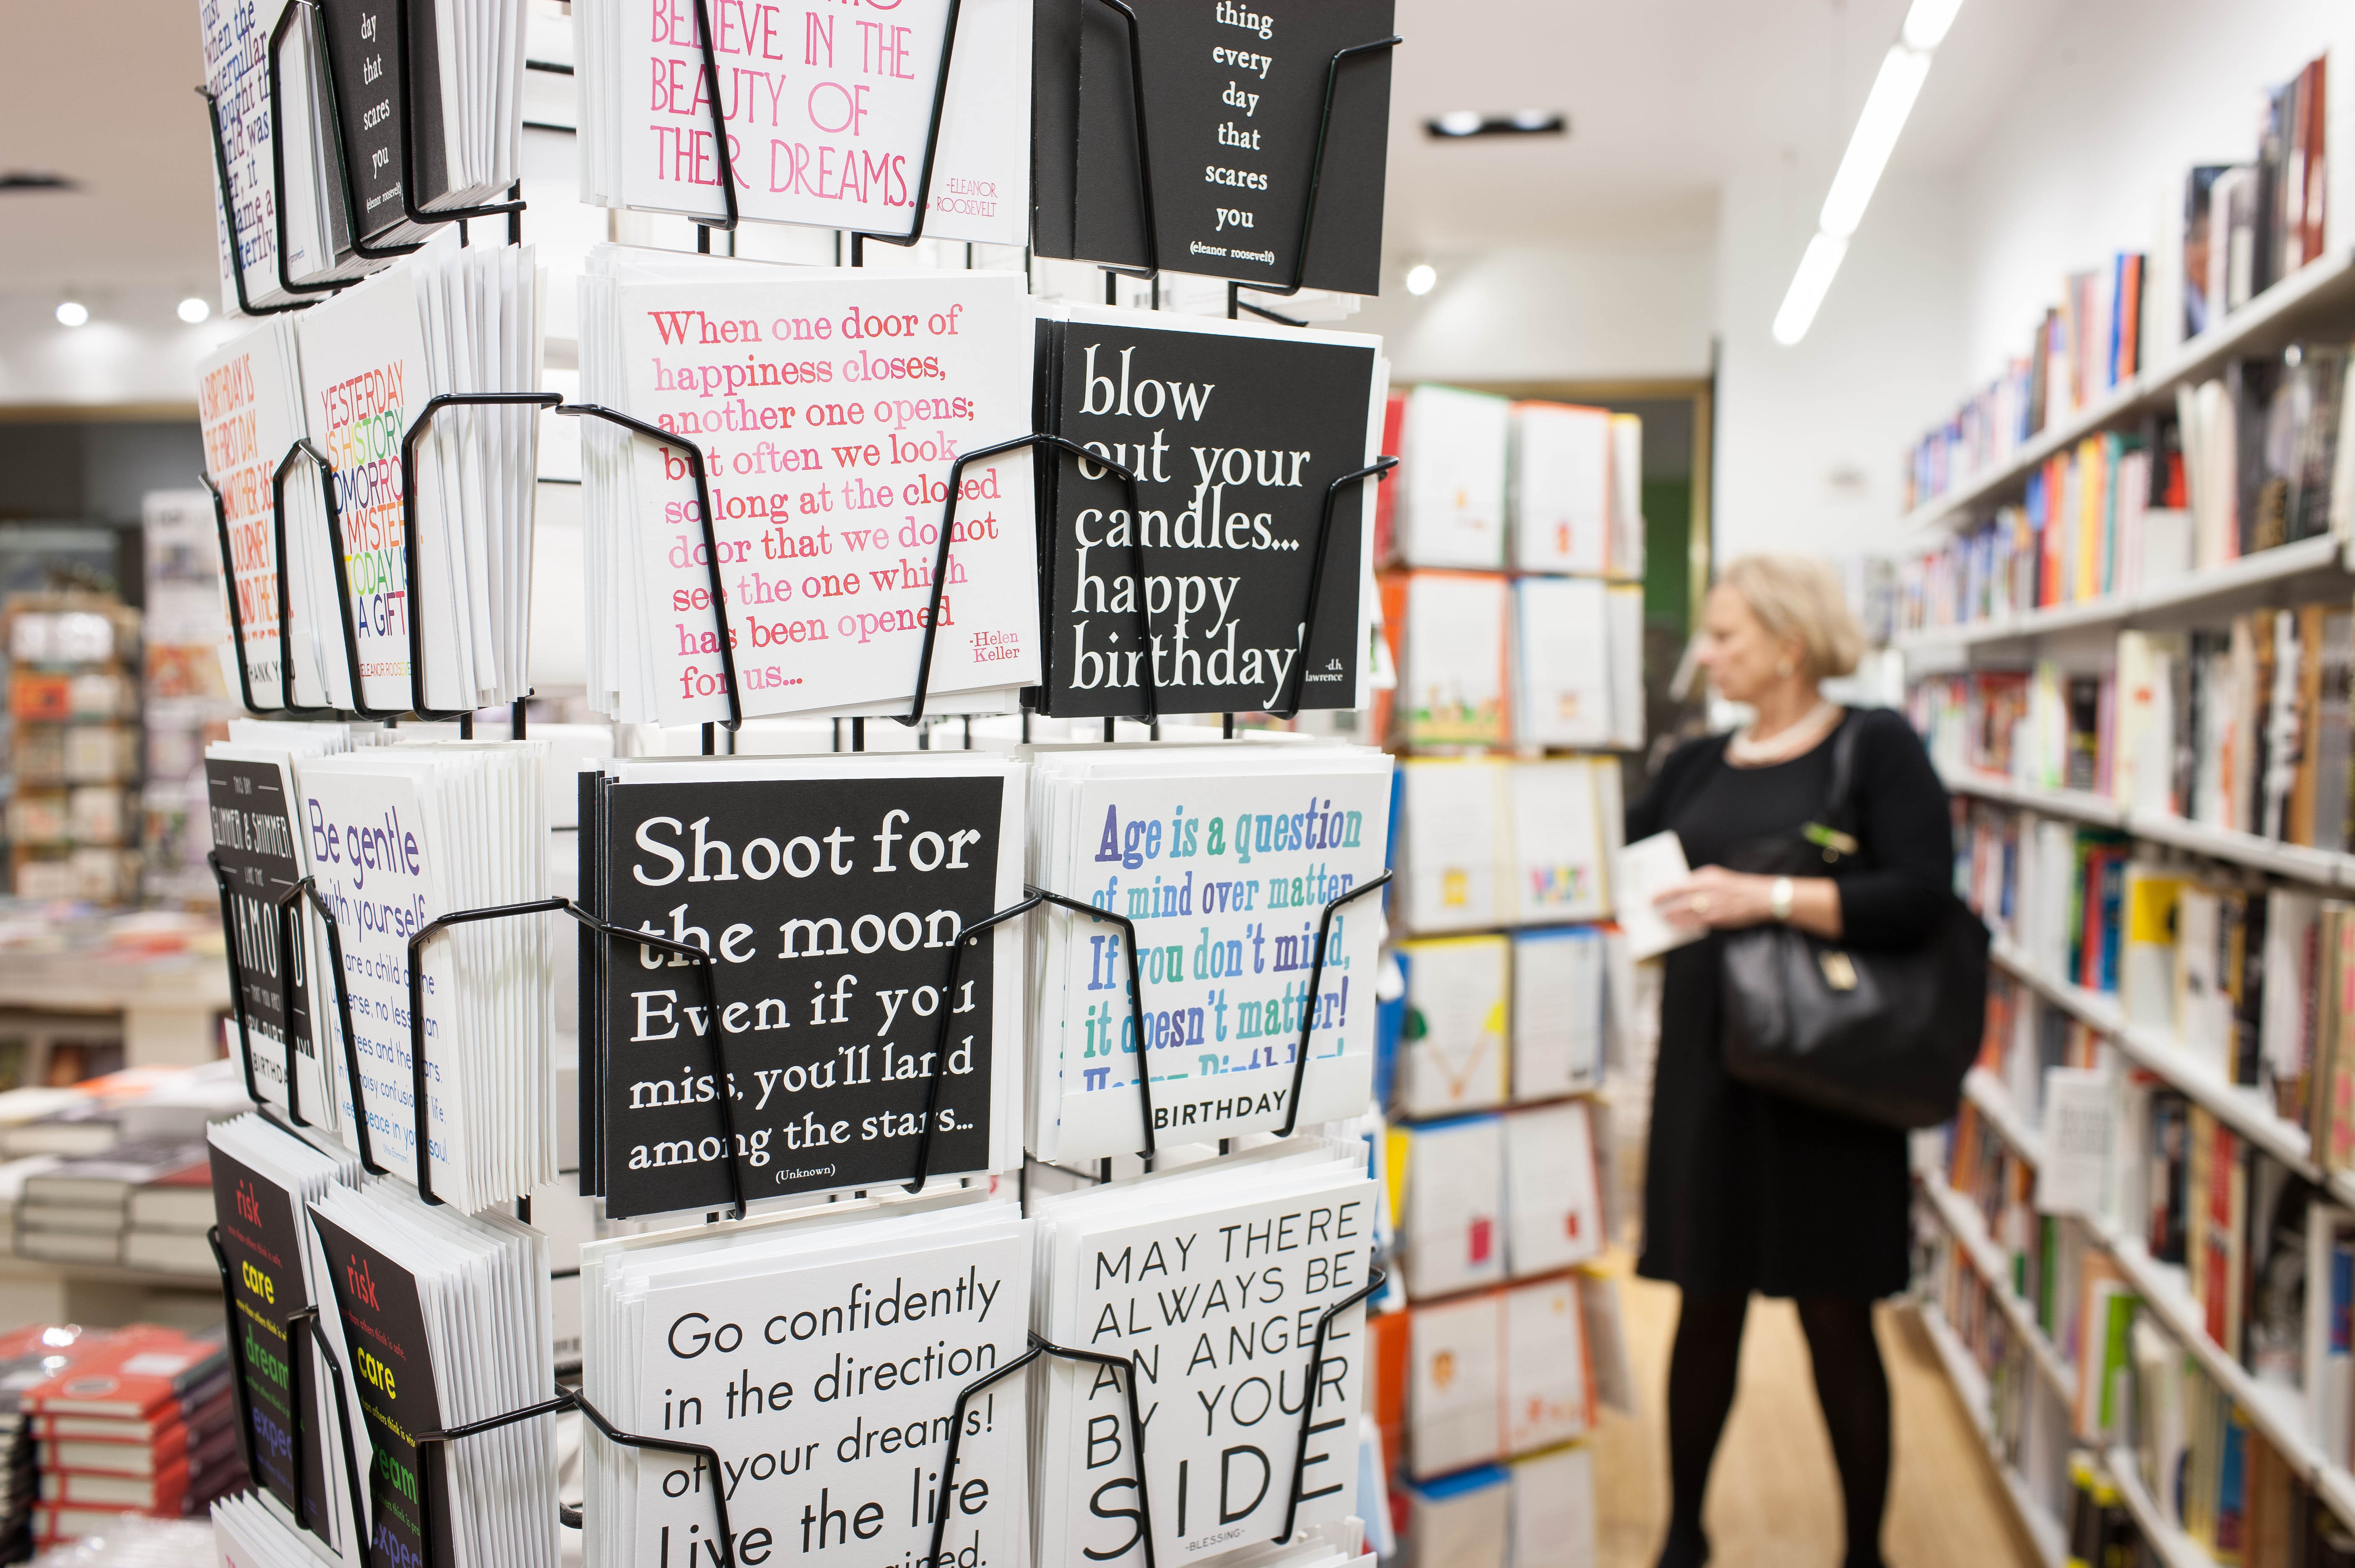 In order to survive, bookstores need to stock more than just books, says John Mutter, editor-in-chief of the online newsletter Shelf Awareness.